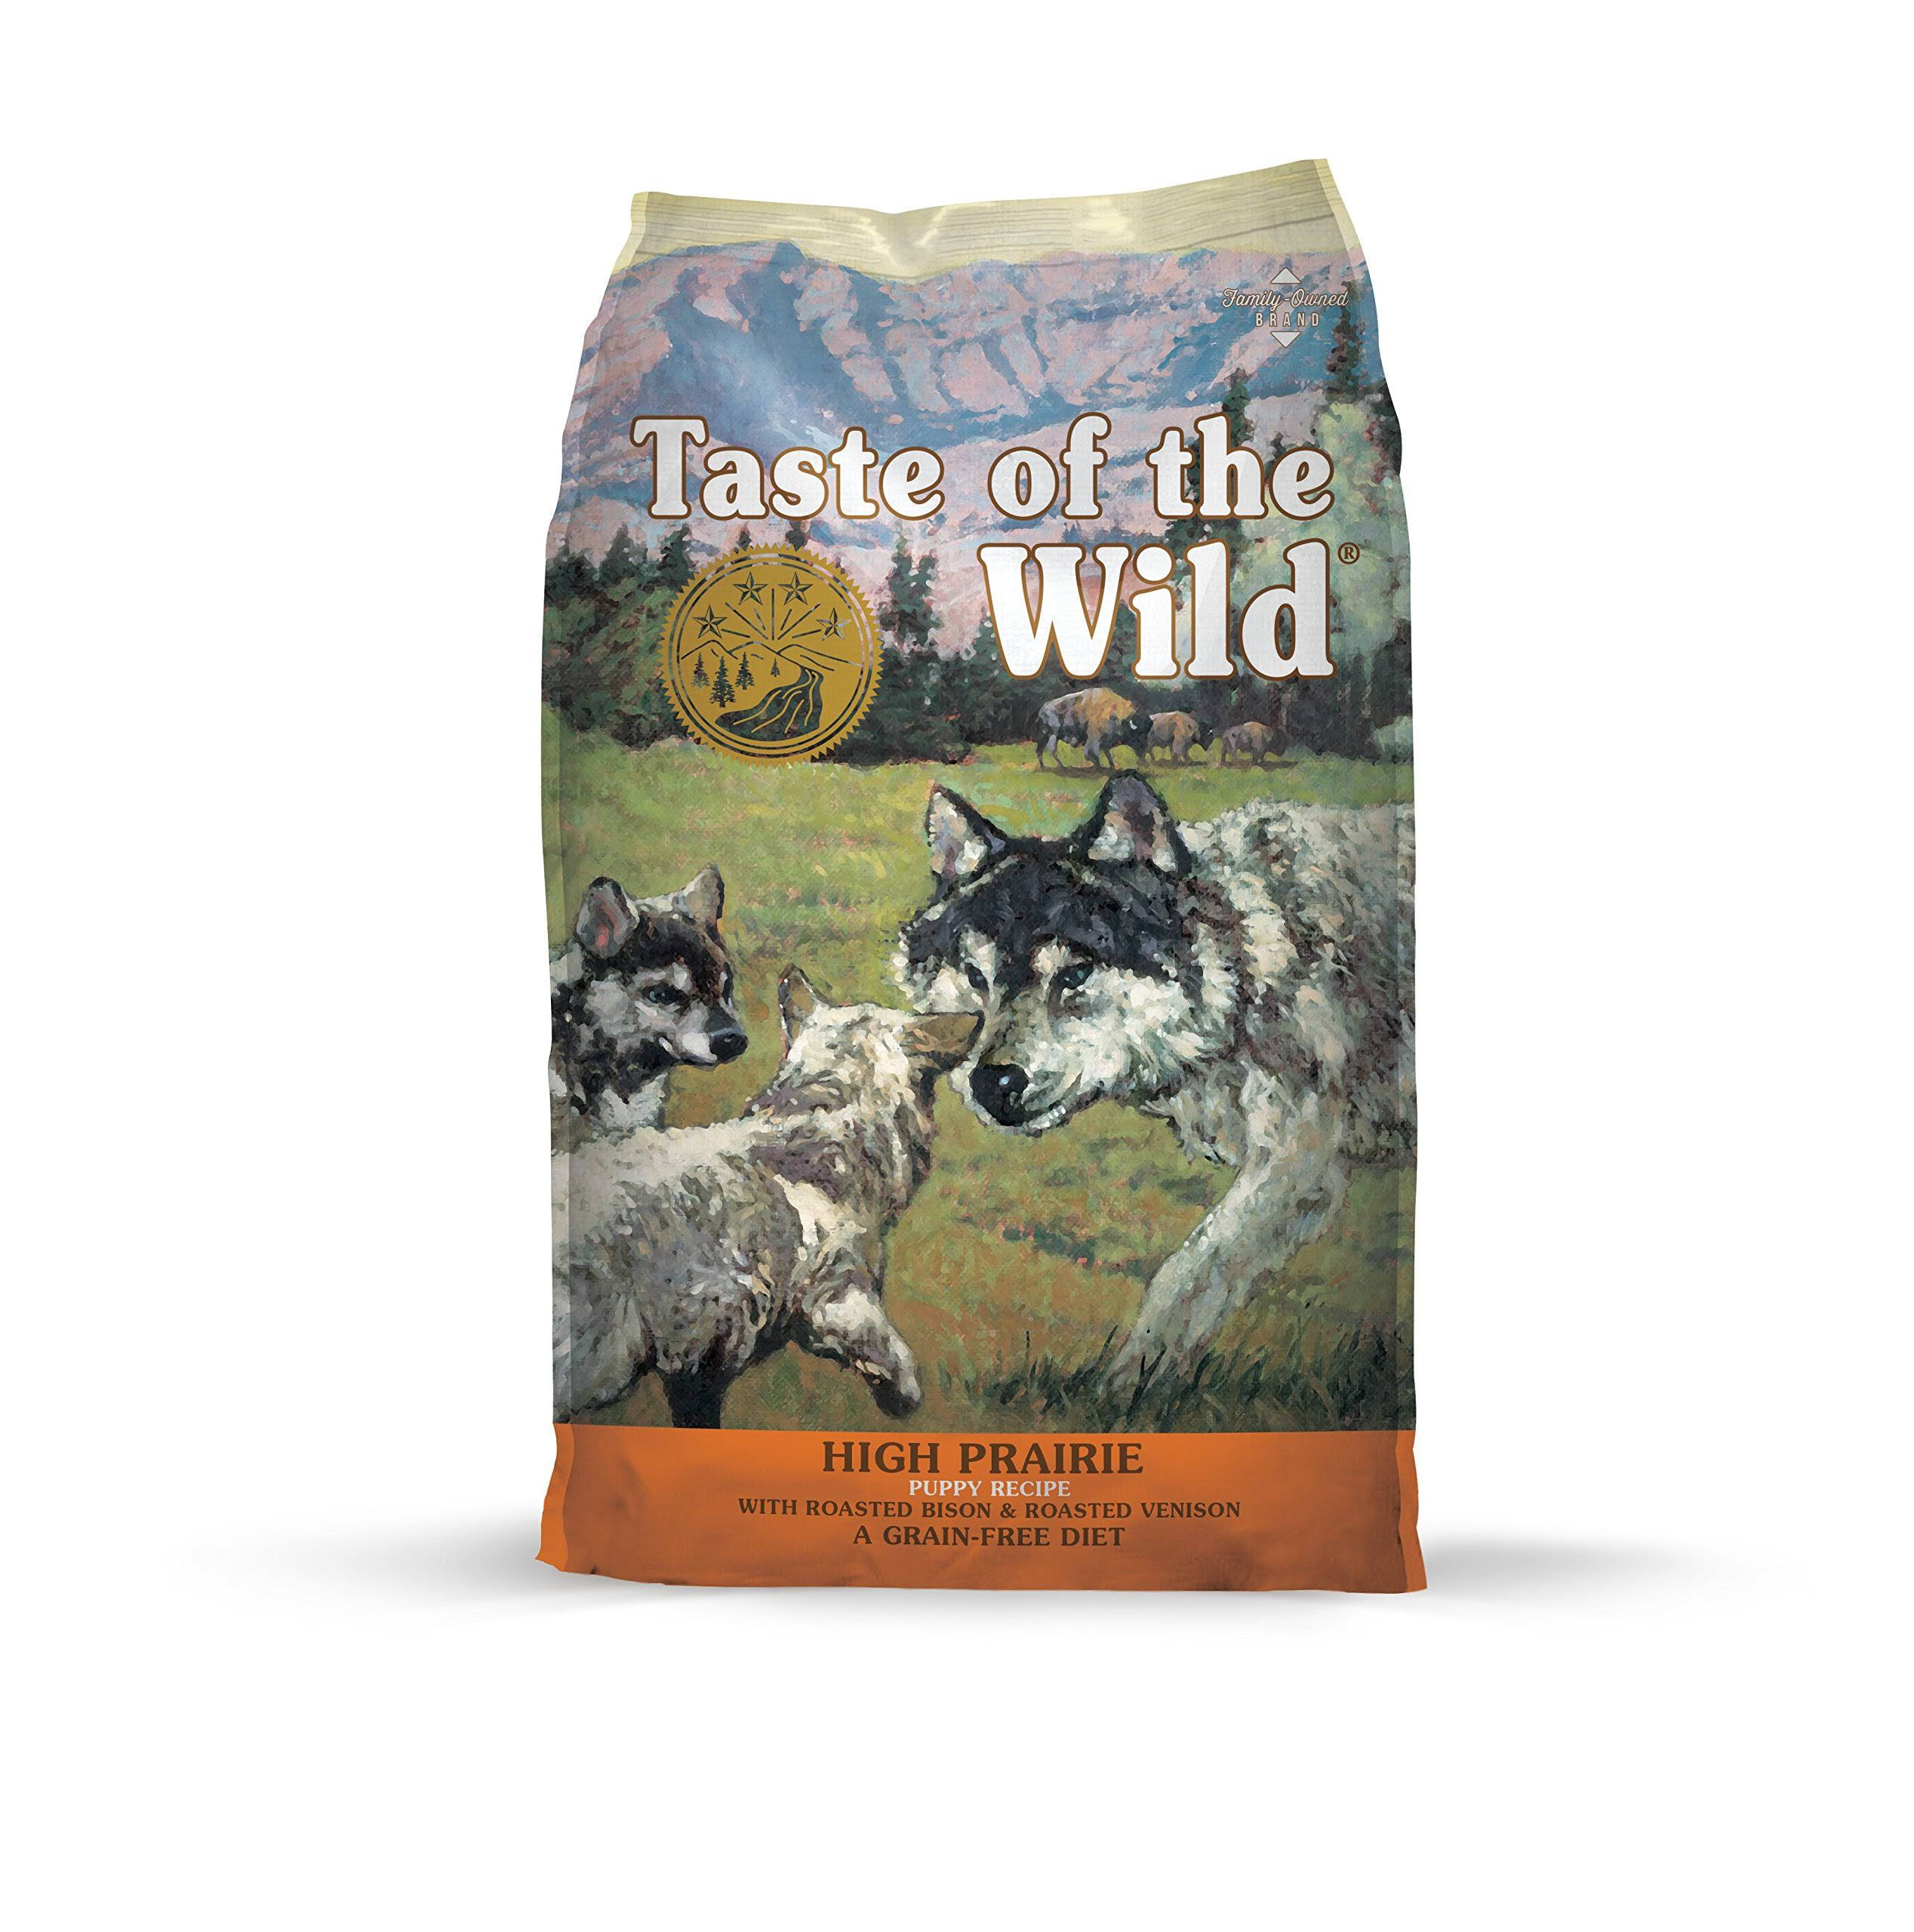 Taste of the Wild Grain-Free High Prairie Dry Dog Food - 5.16 lbs bag